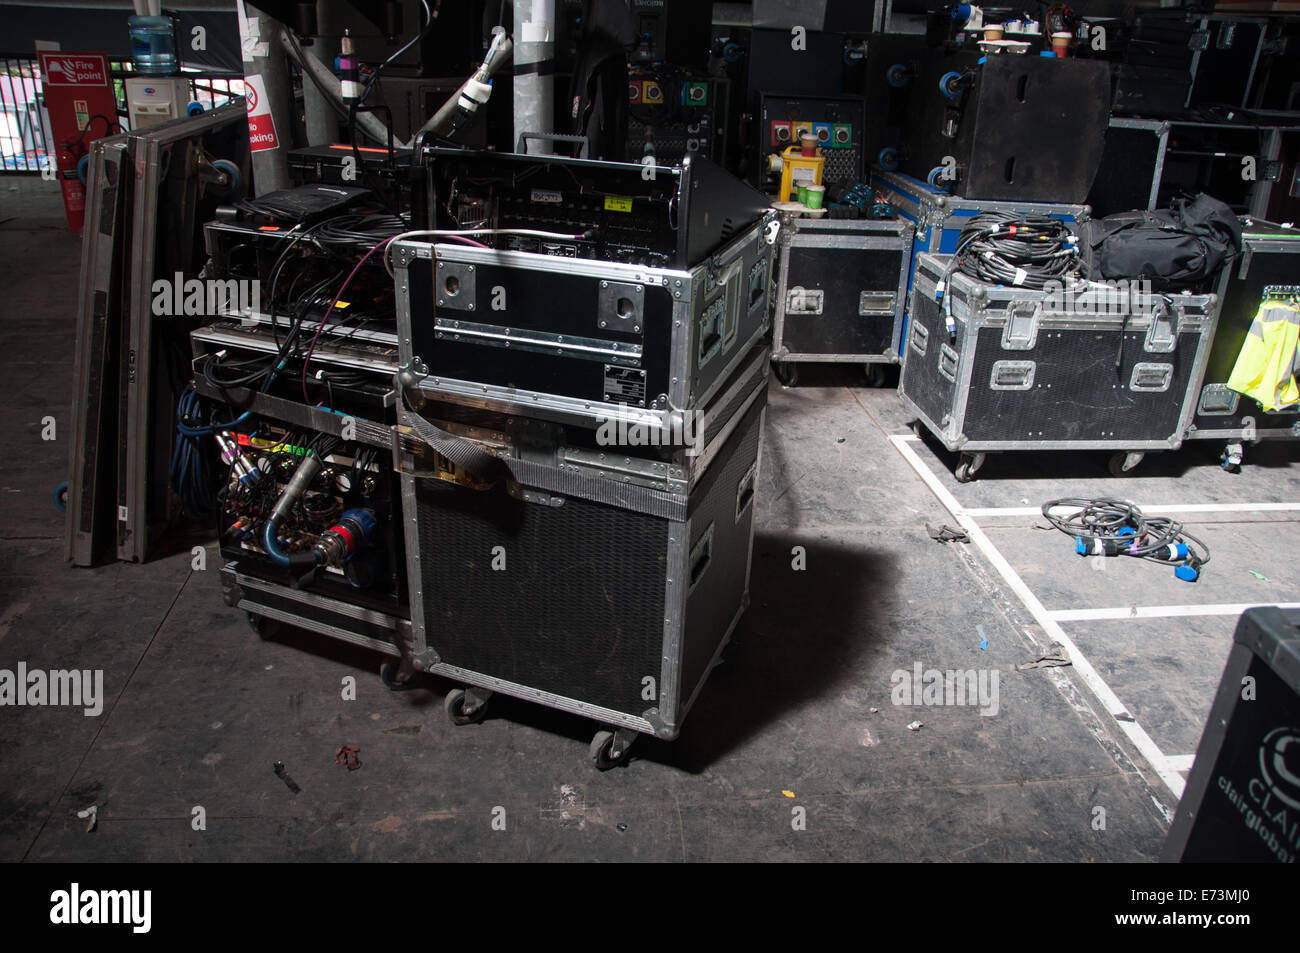 backstage-music-equipment-boxes-E73MJ0.jpg